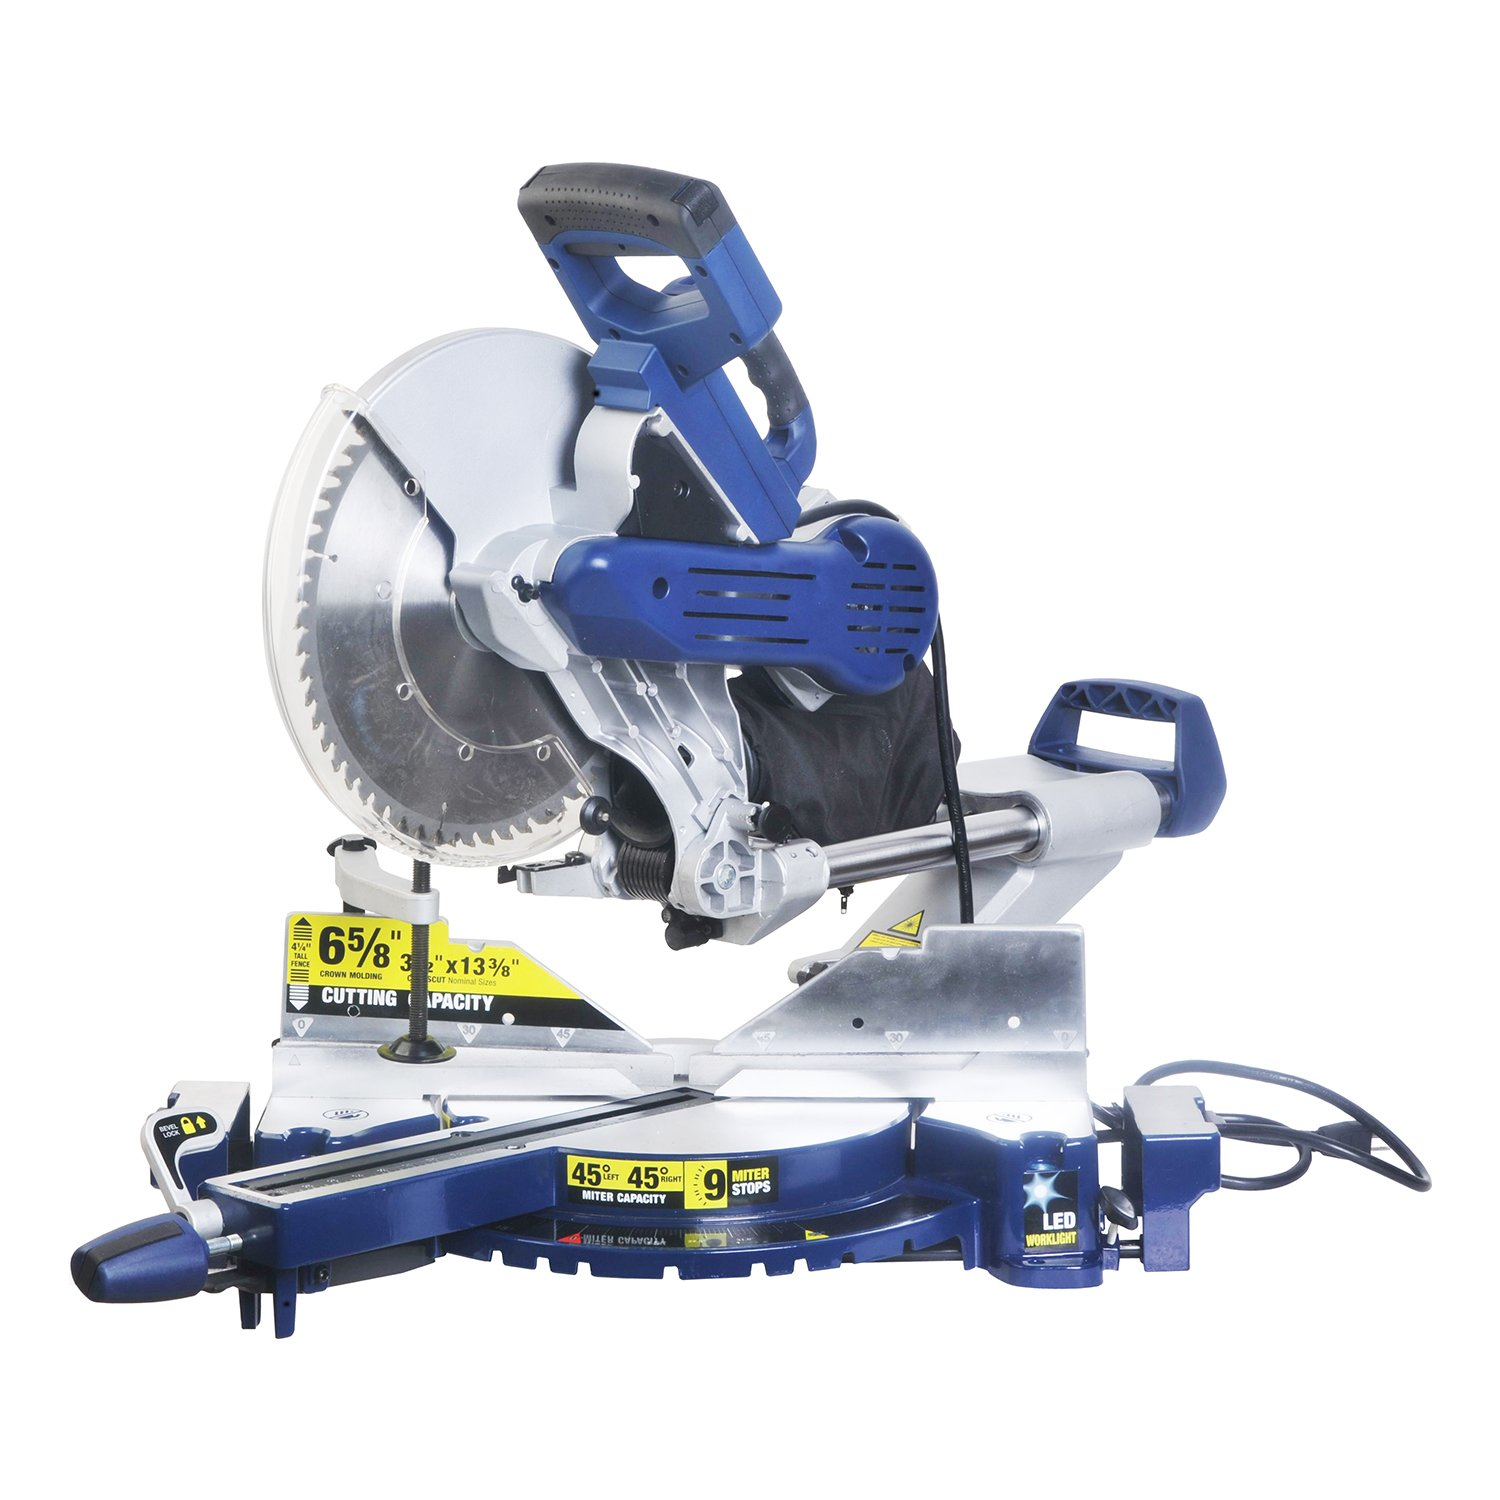 Wonlink 15 Amp 12'' Dual Bevel Sliding Compound Miter Saw with Laser and LED Work Light by Wonlink (Image #5)